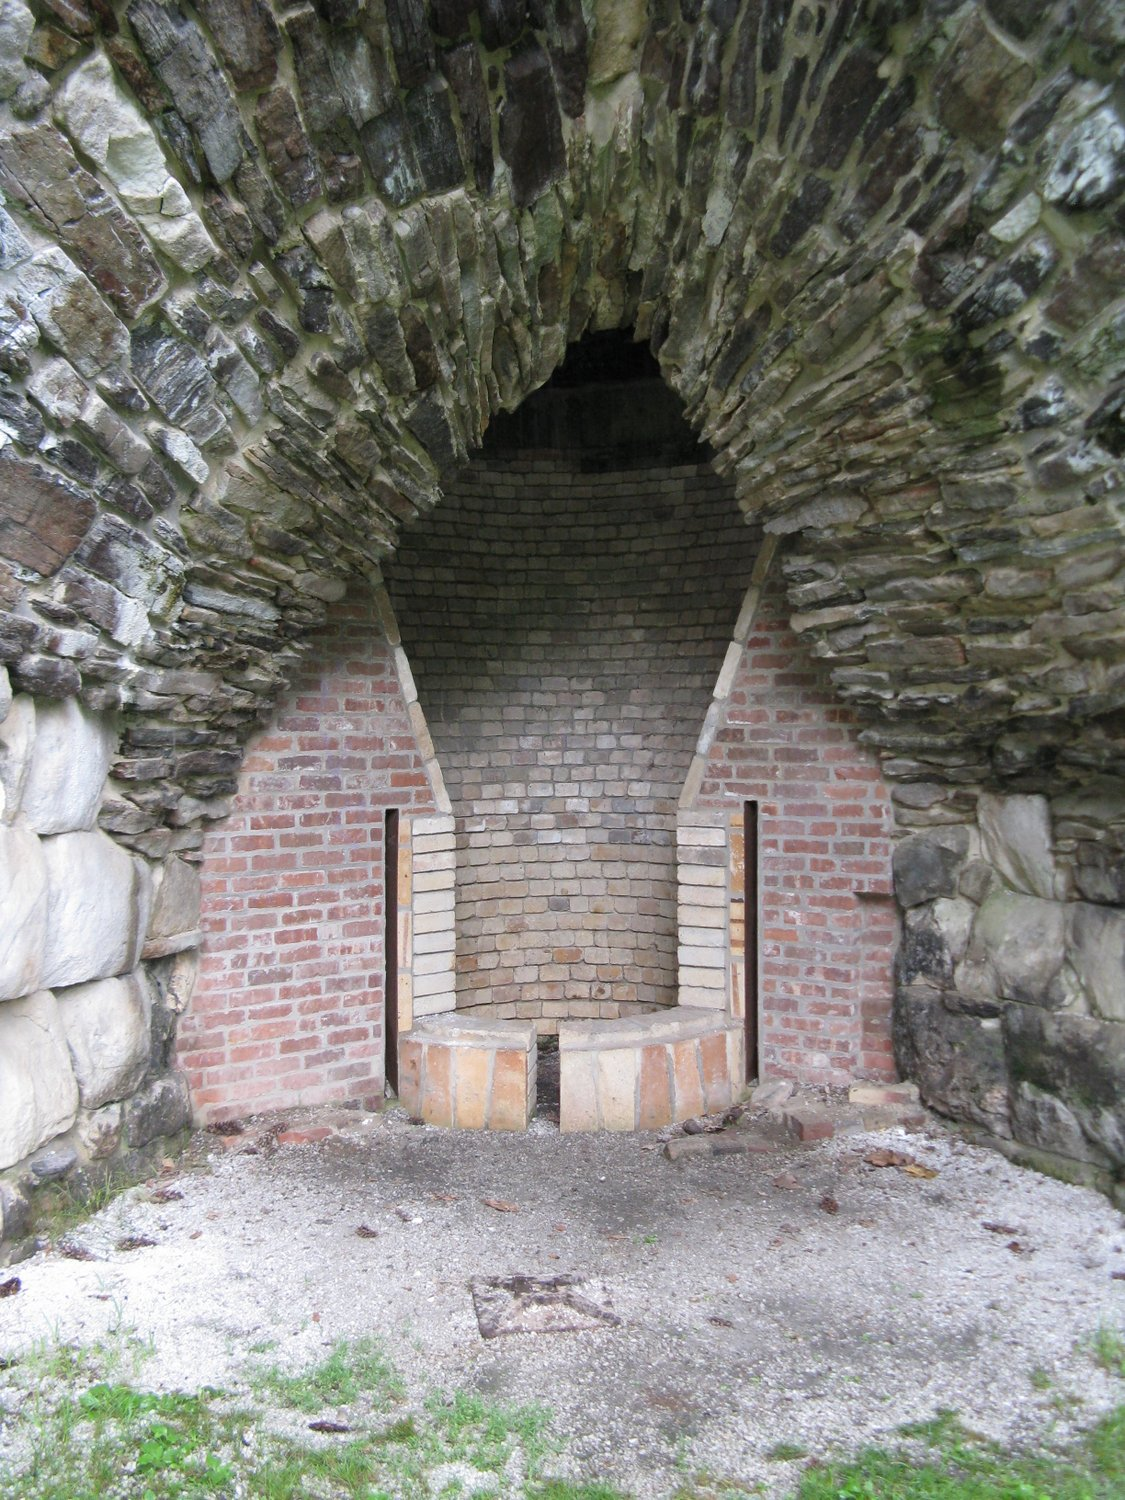 Cutaway view of the hearth